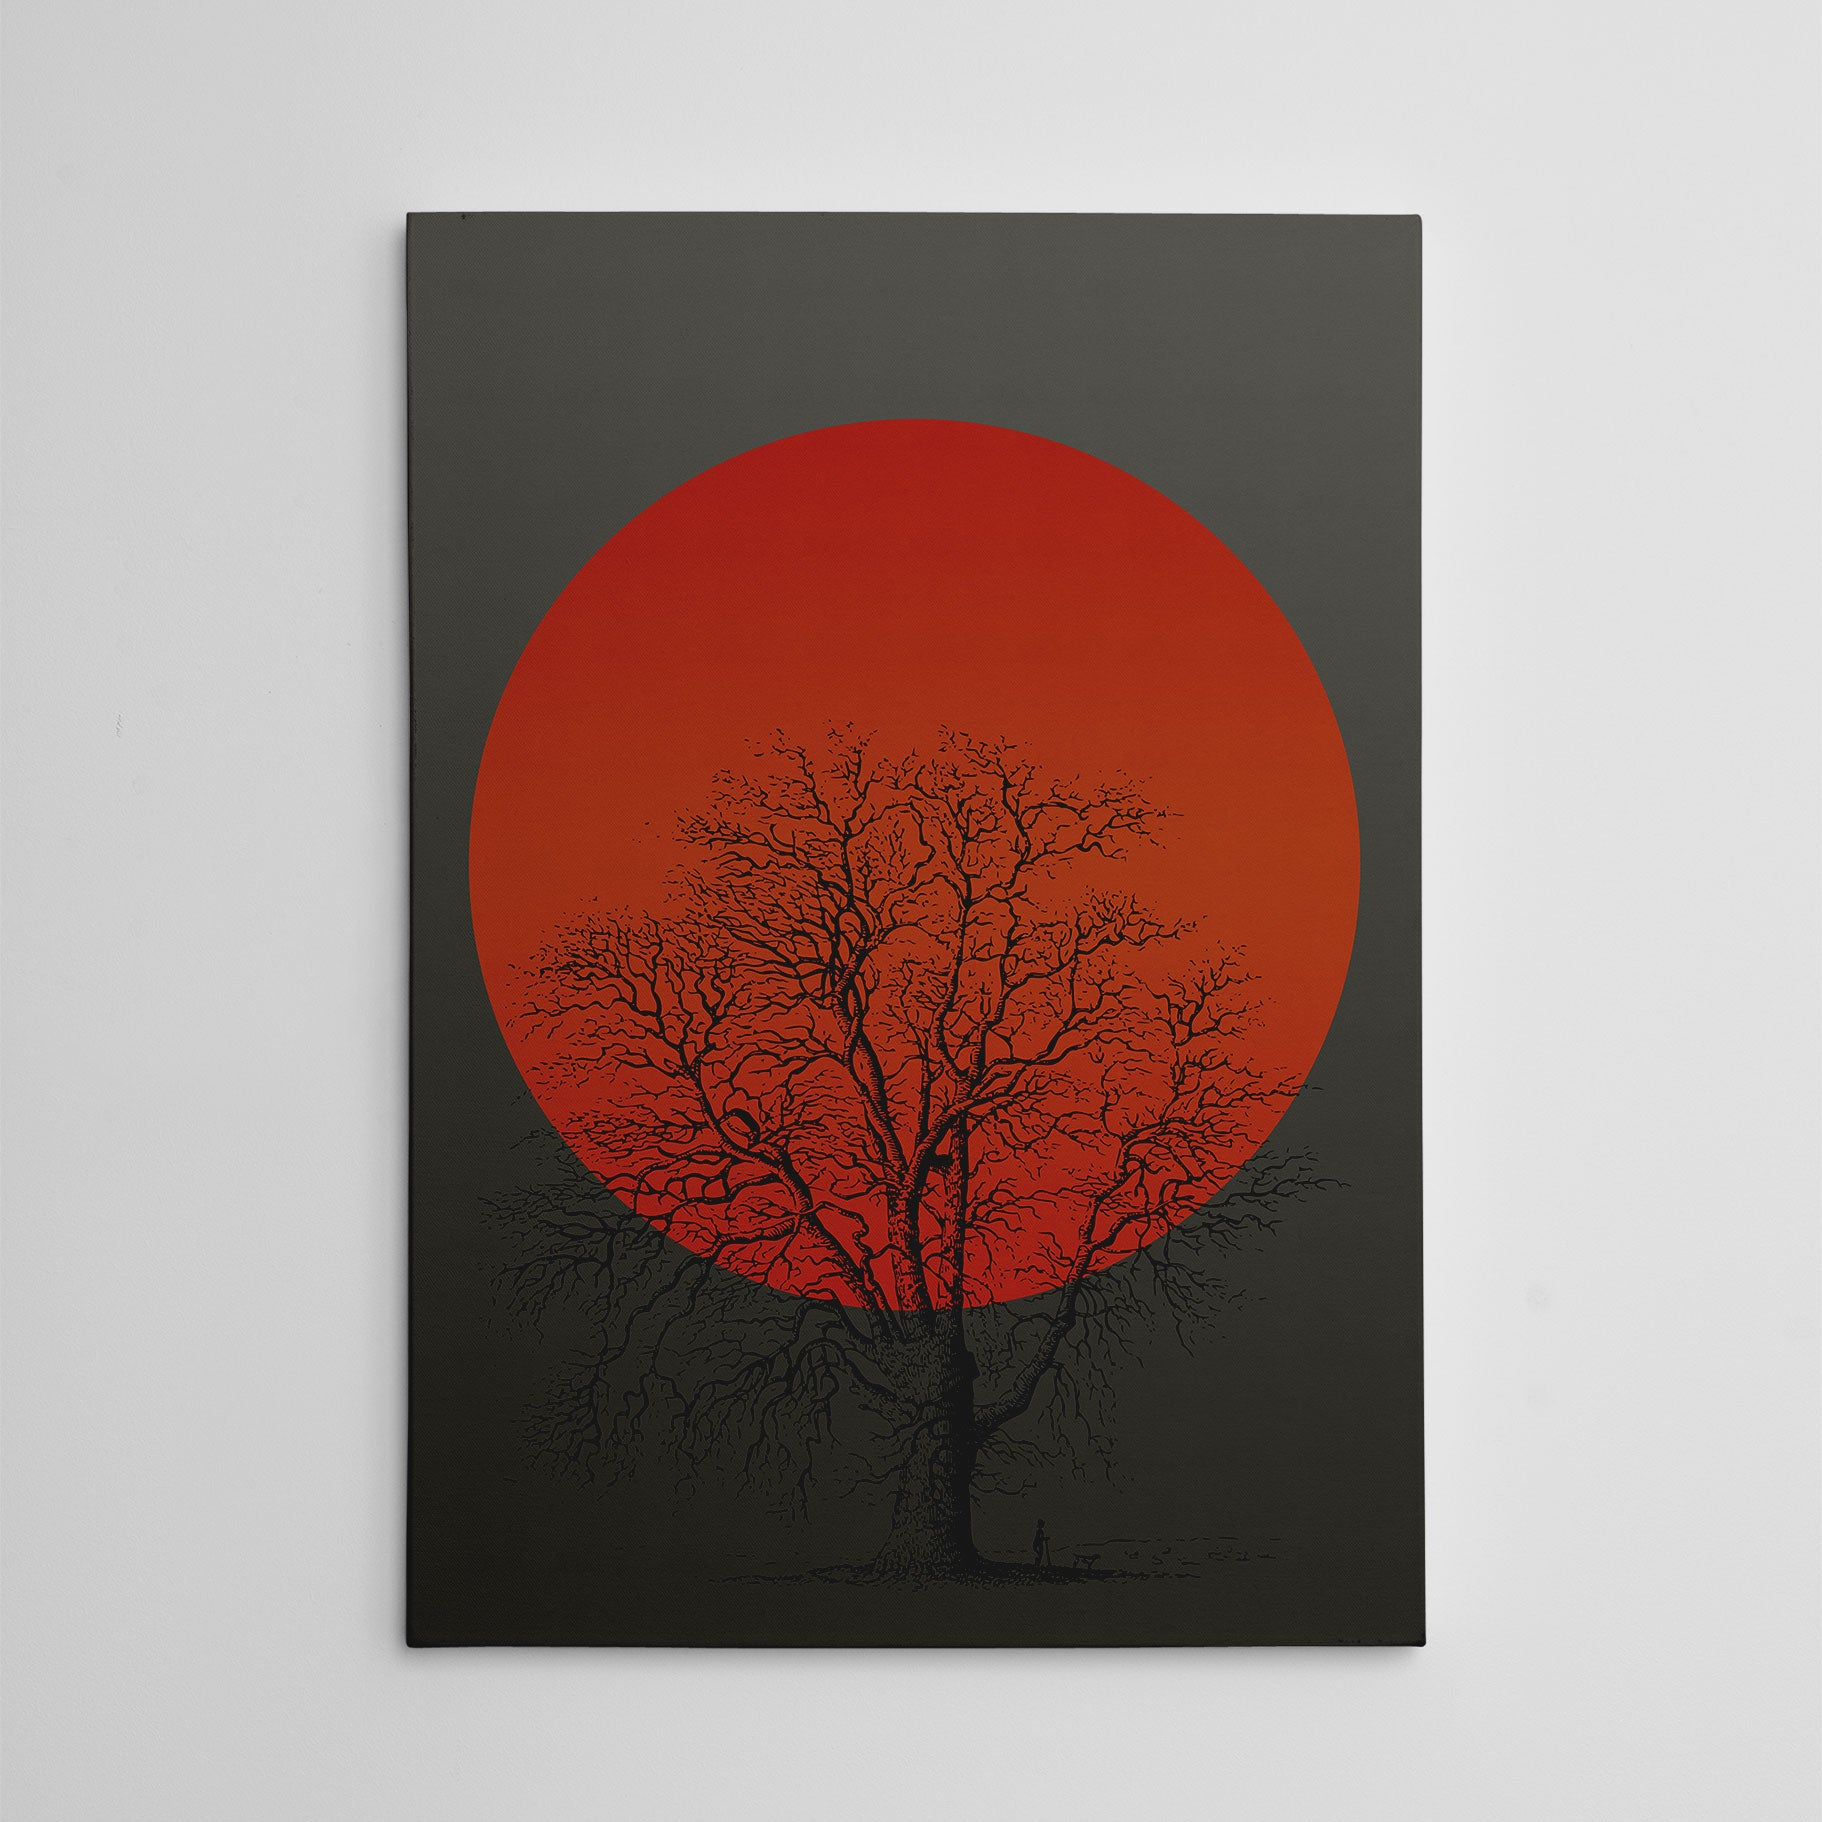 Canvas print with orange sun and a tree, on grey textured paper effect background